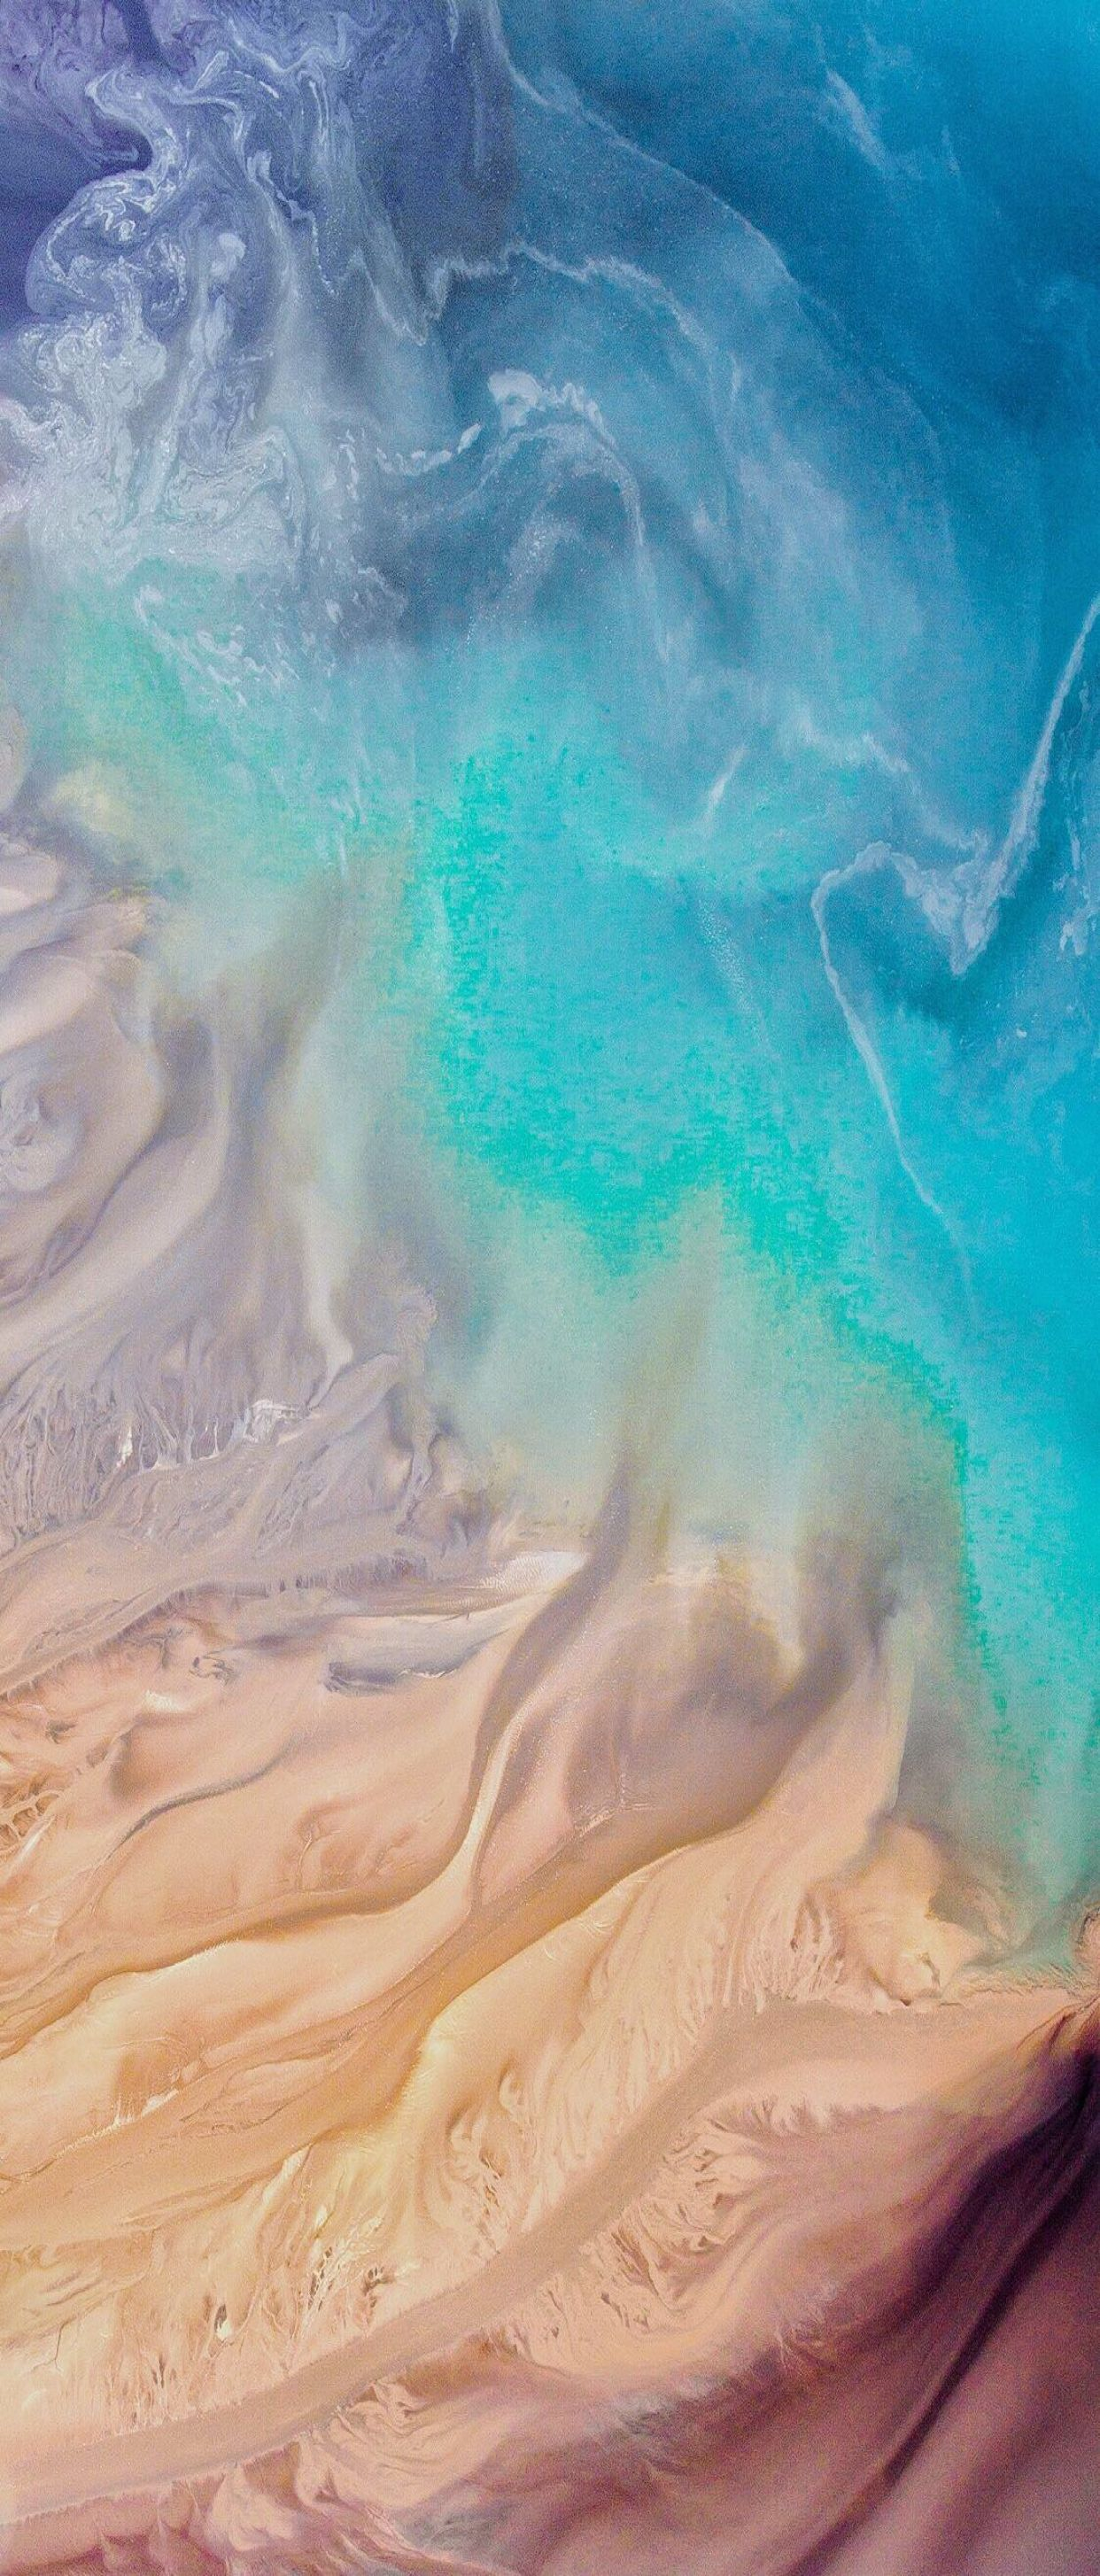 Ios 11 Iphone X Aqua Blue Water Beach Wave Ocean Apple Wallpaper Iphone 8 Clean Beauty Ios 11 Wallpaper Apple Wallpaper Iphone Samsung Wallpaper